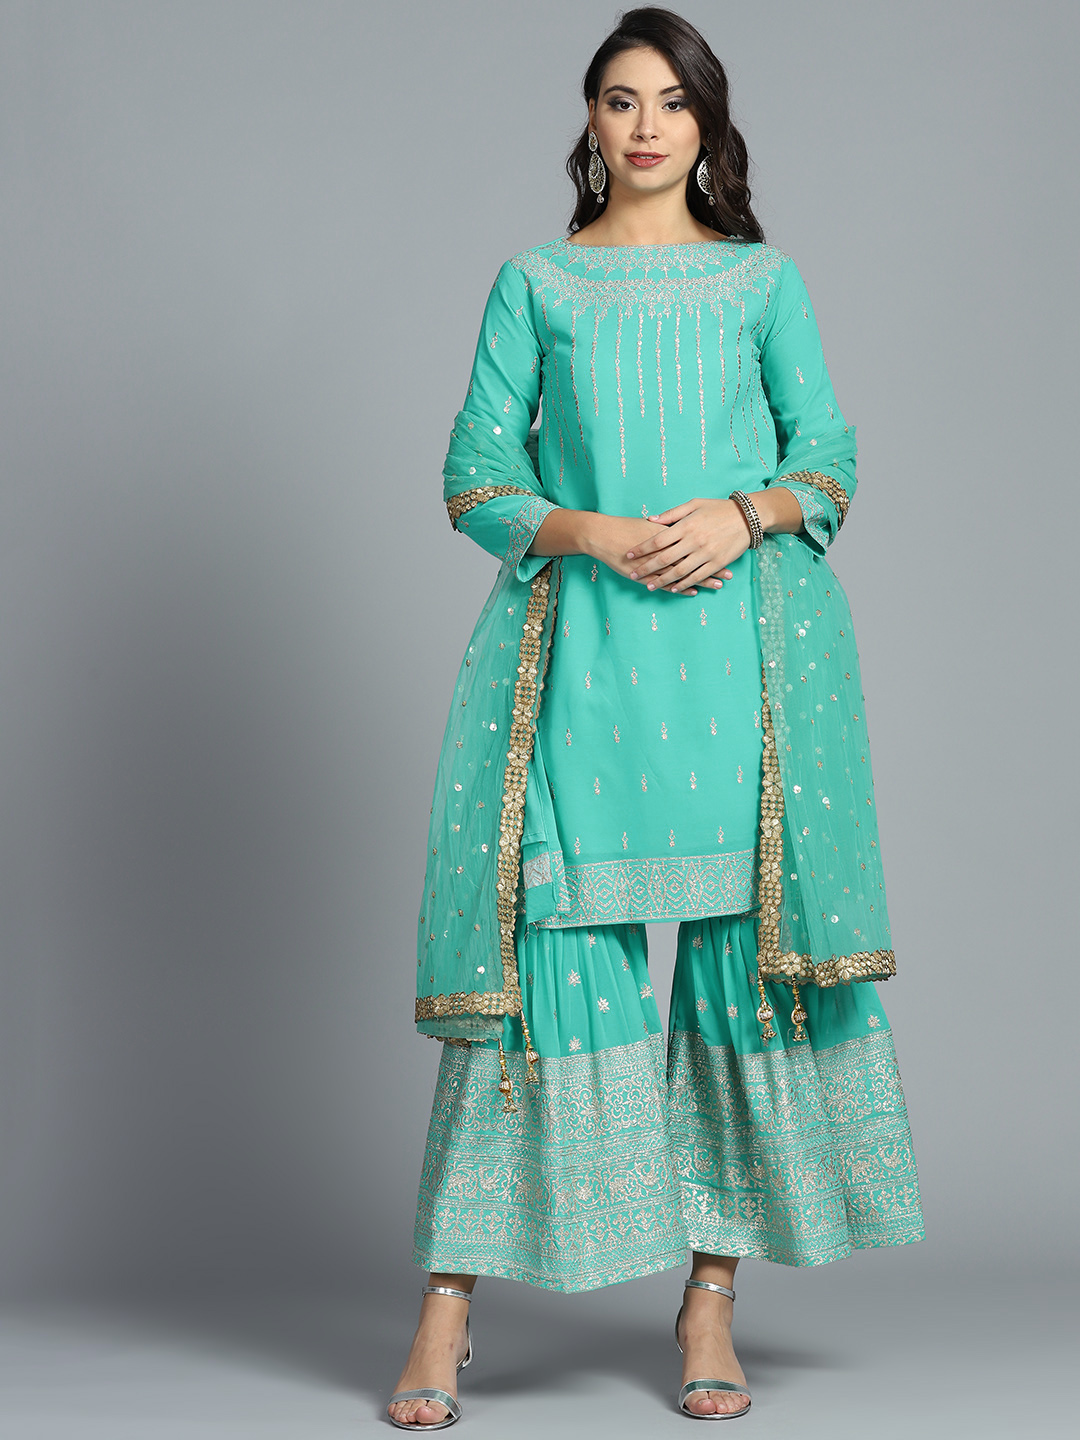 chhabra555-blue-suit-palazzos-what-to-wear-for-first-lohri-after-wedding